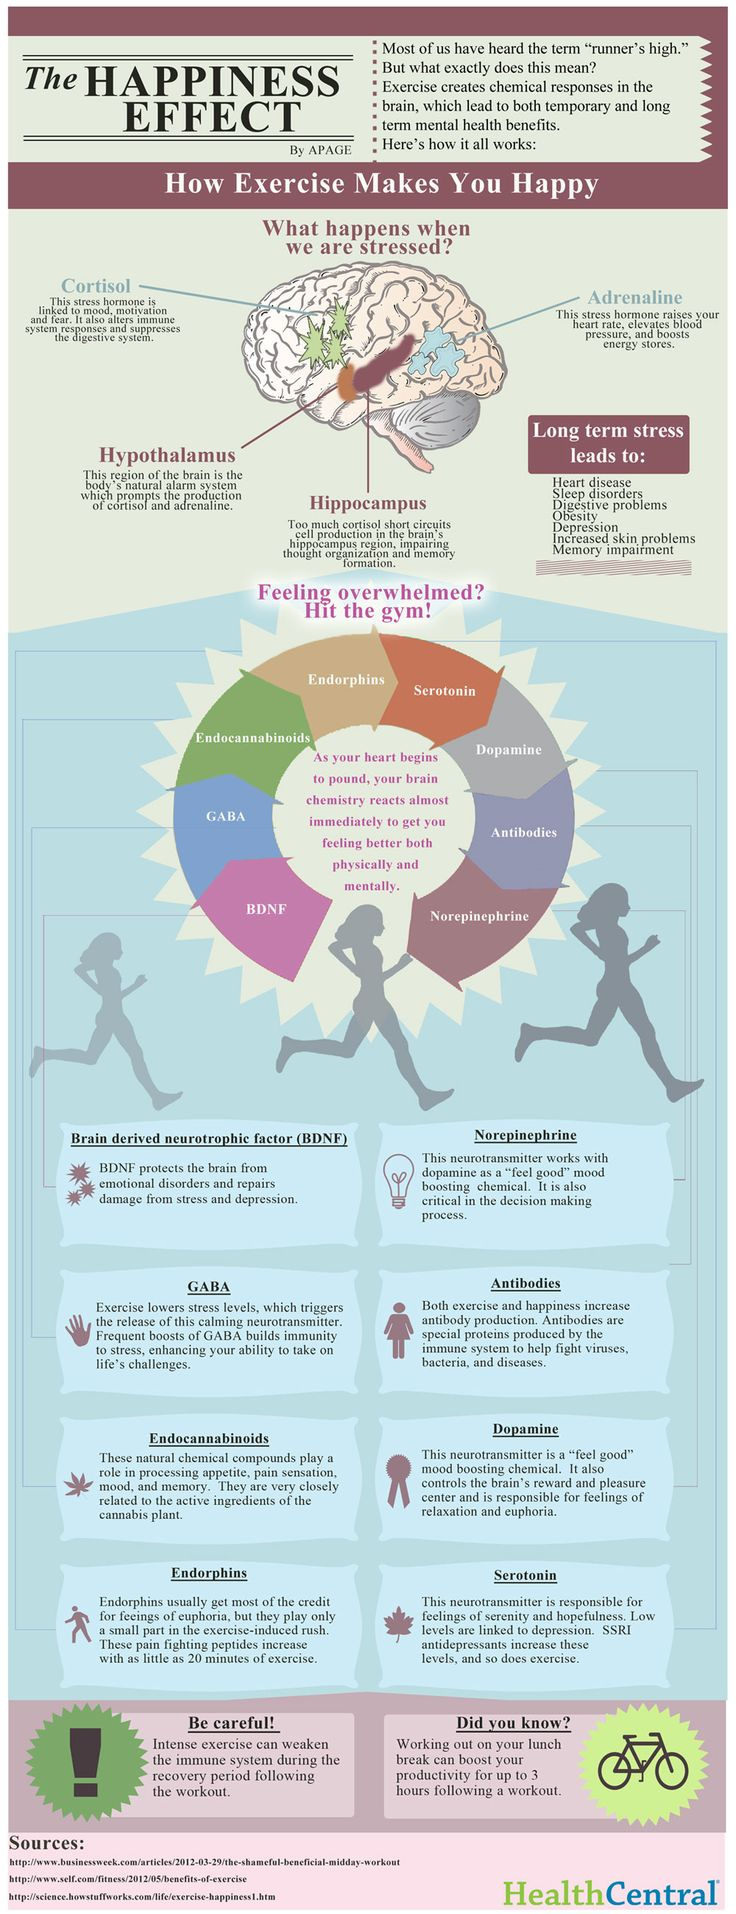 How exercise makes you happy The Happiness Effect Infographic